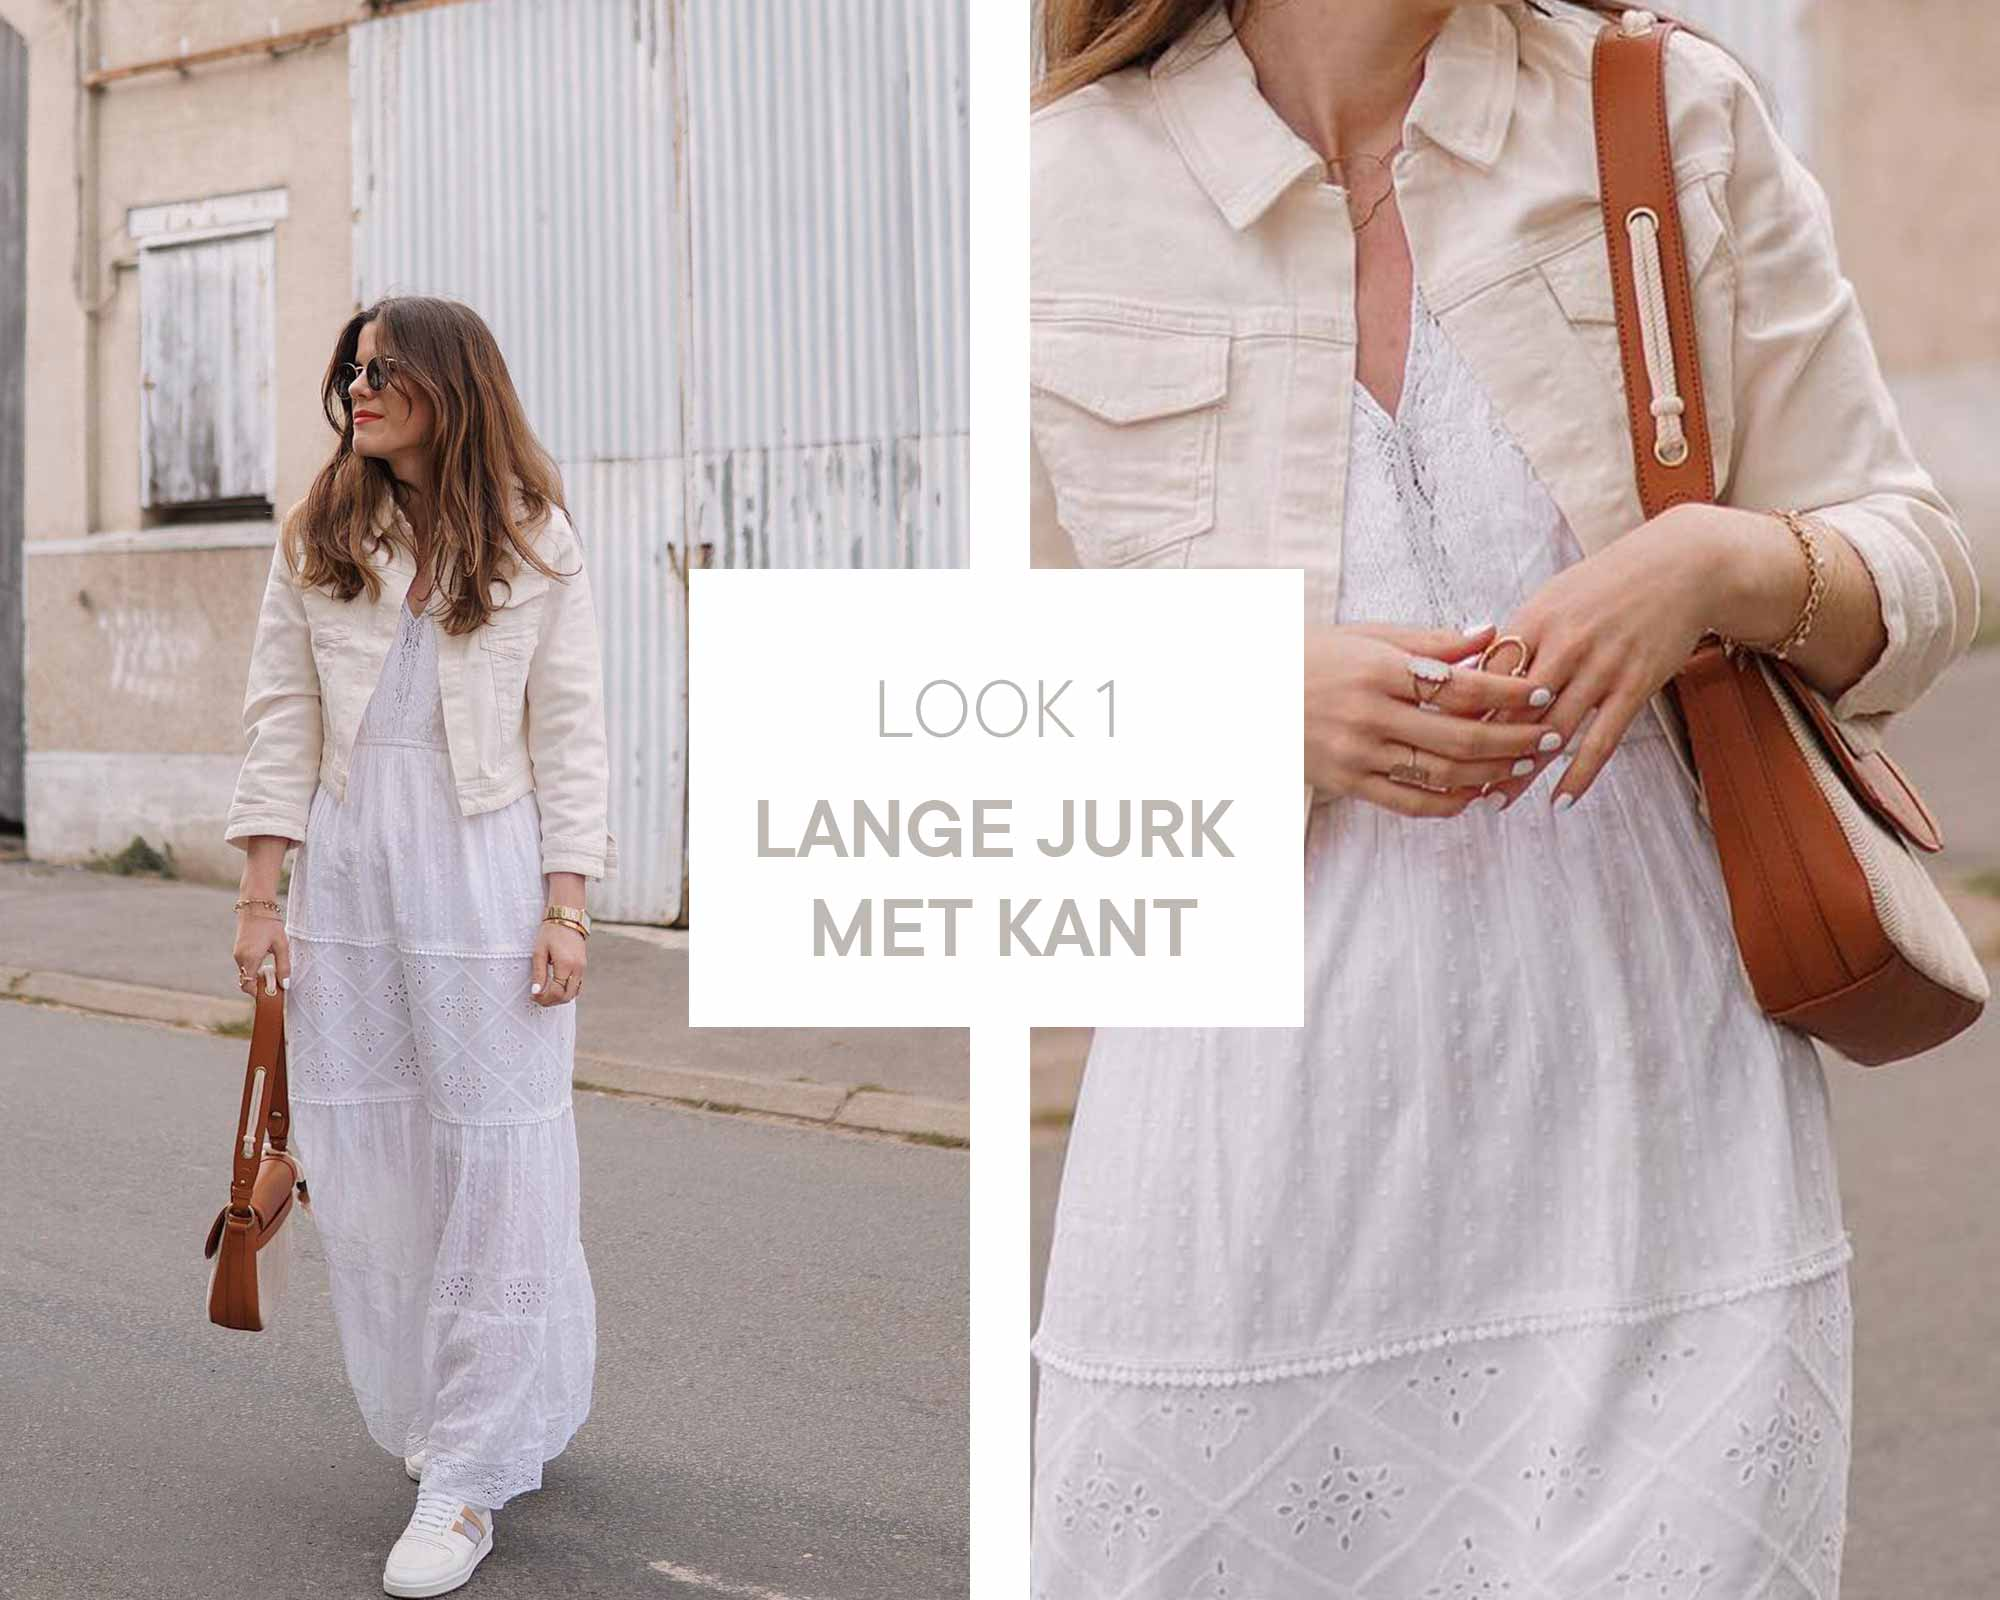 Alexia wearing a long white dress with cream white jacket and white shoes. Wearing a brown shoulder bag and retro sunglasses.